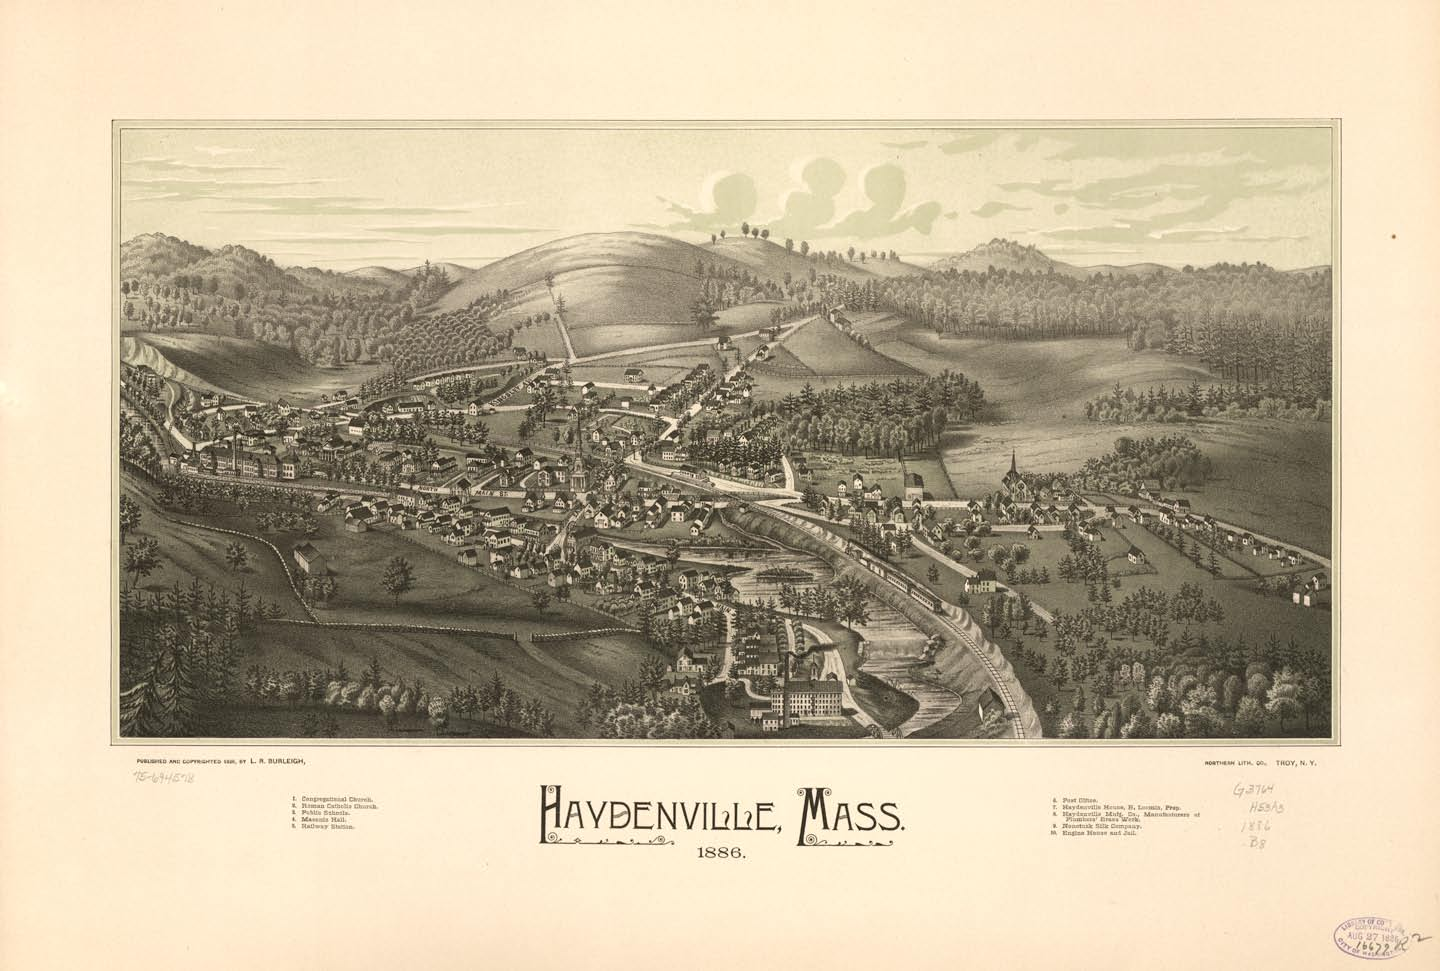 haydenville map.jpg